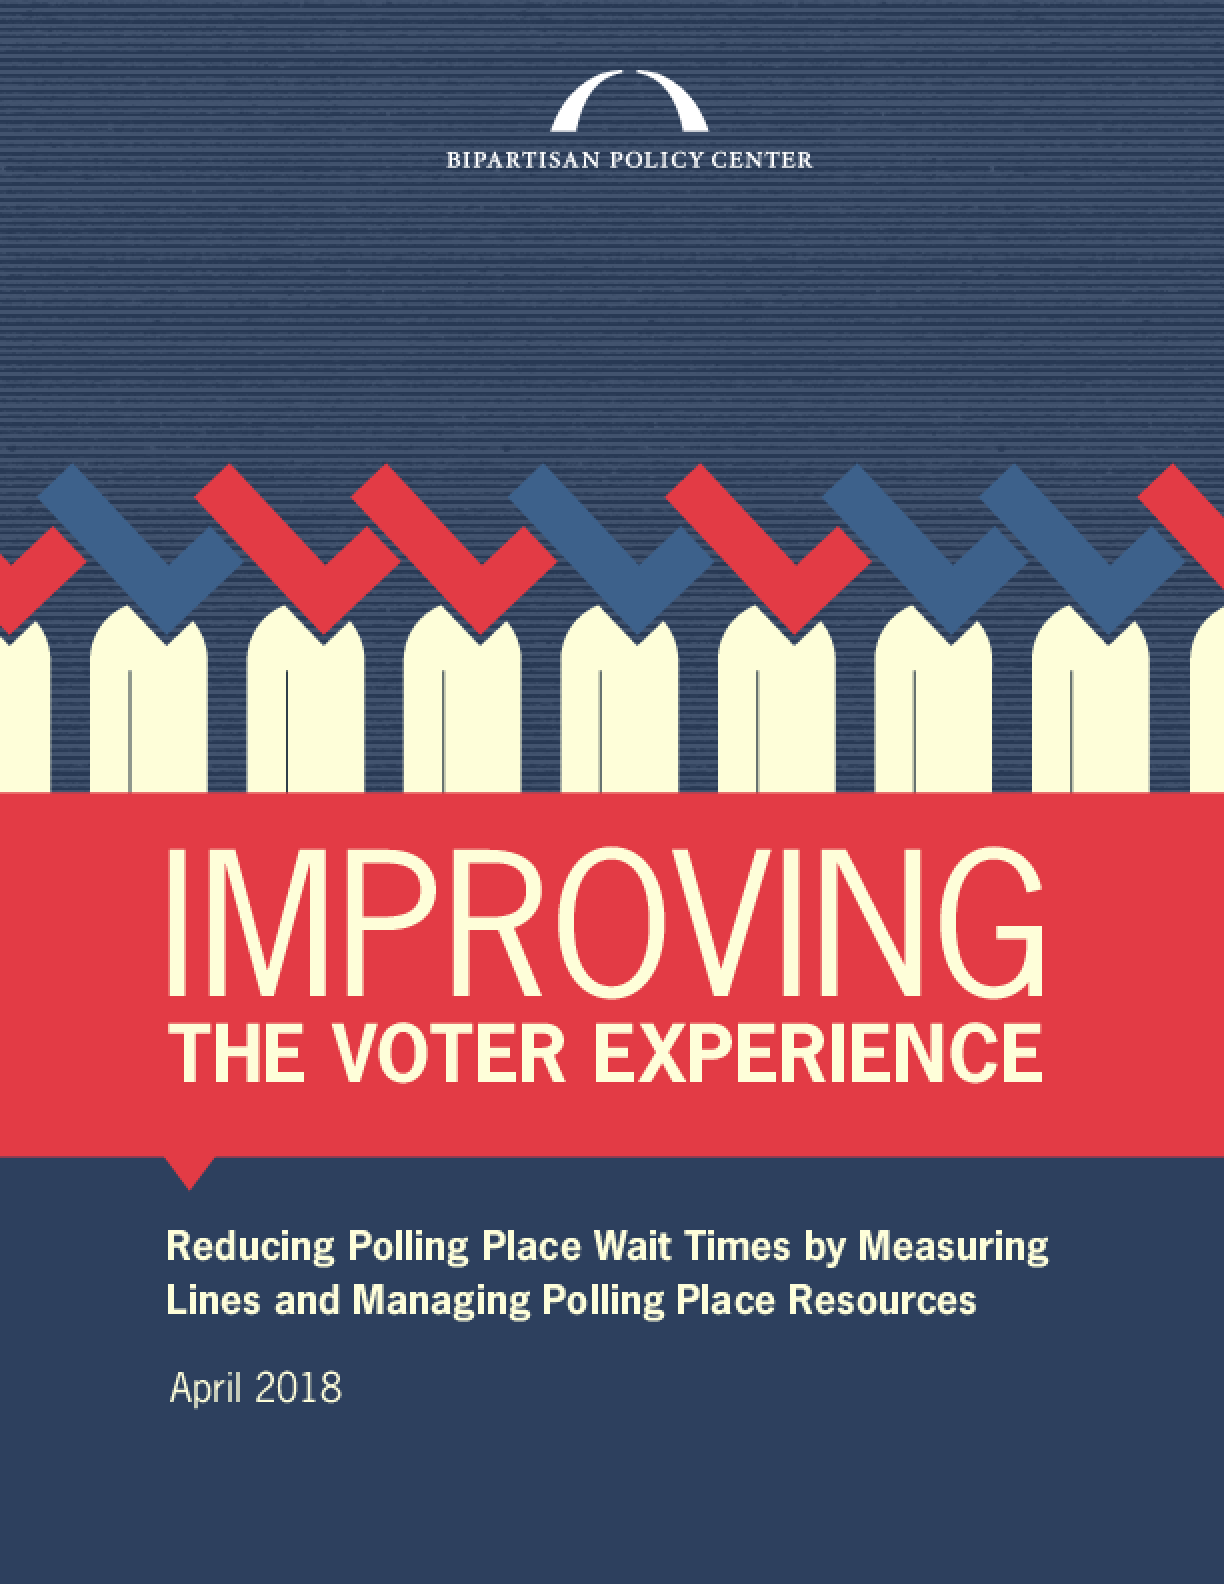 Improving the Voter Experience: Reducing Polling Place Wait Times by Measuring Lines and Managing Polling Place Resources